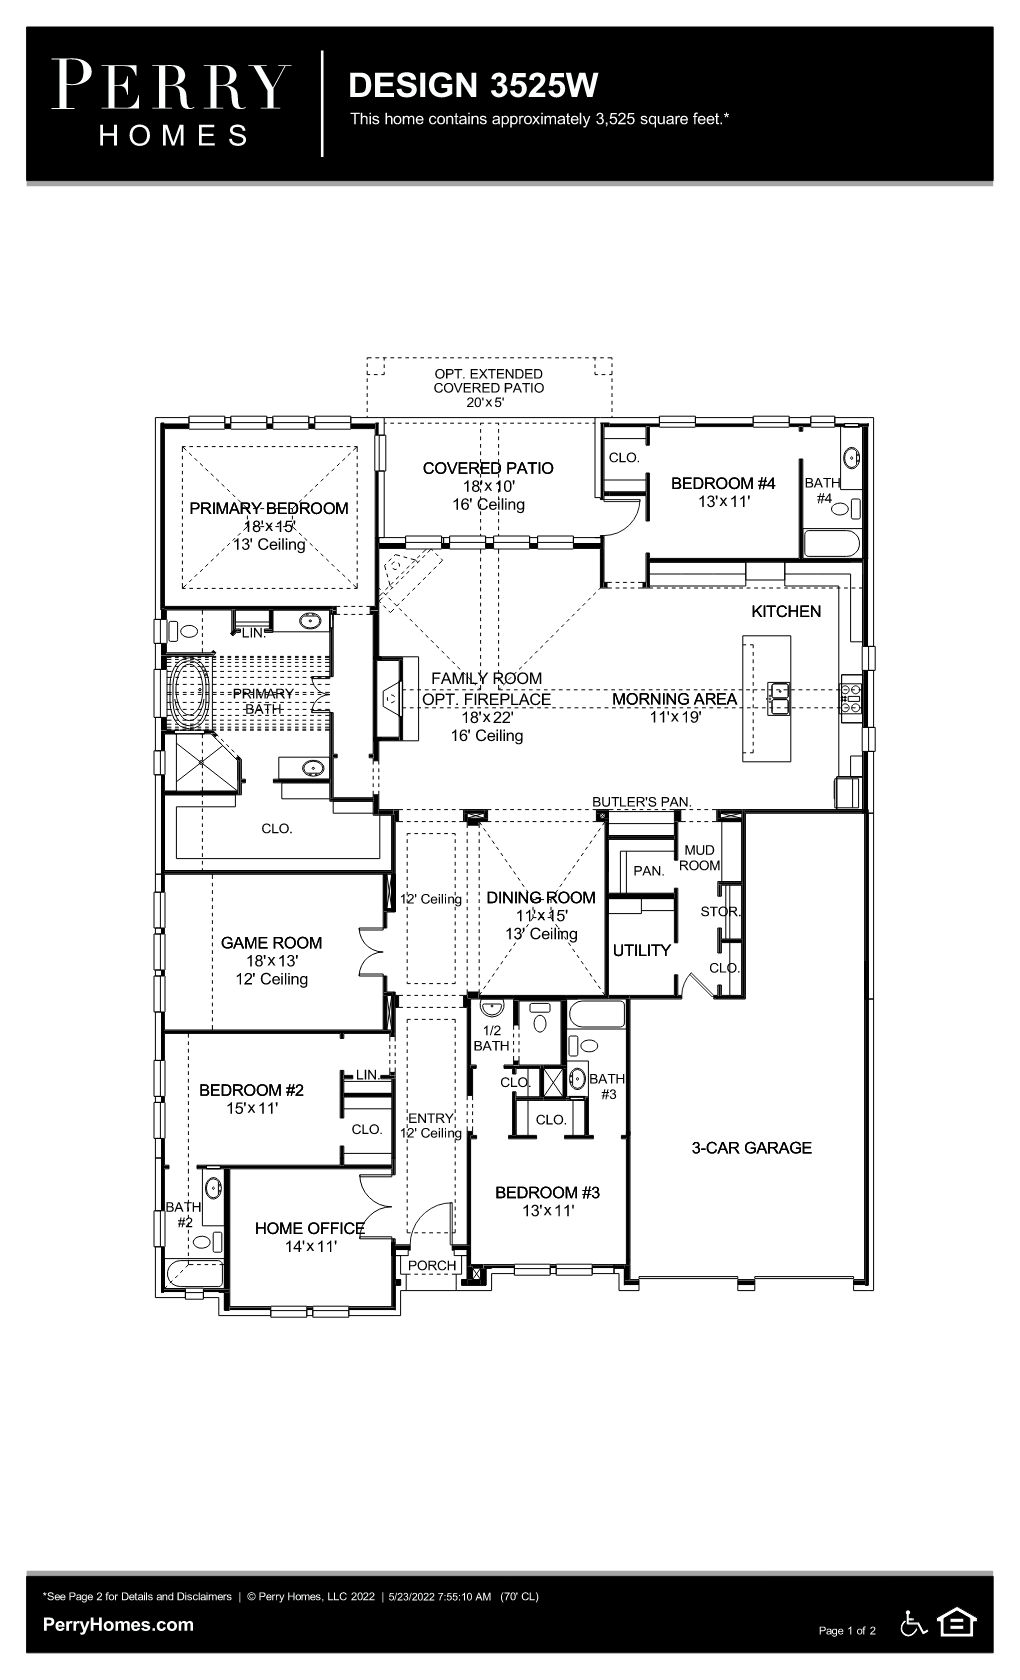 Floor Plan for 3525W